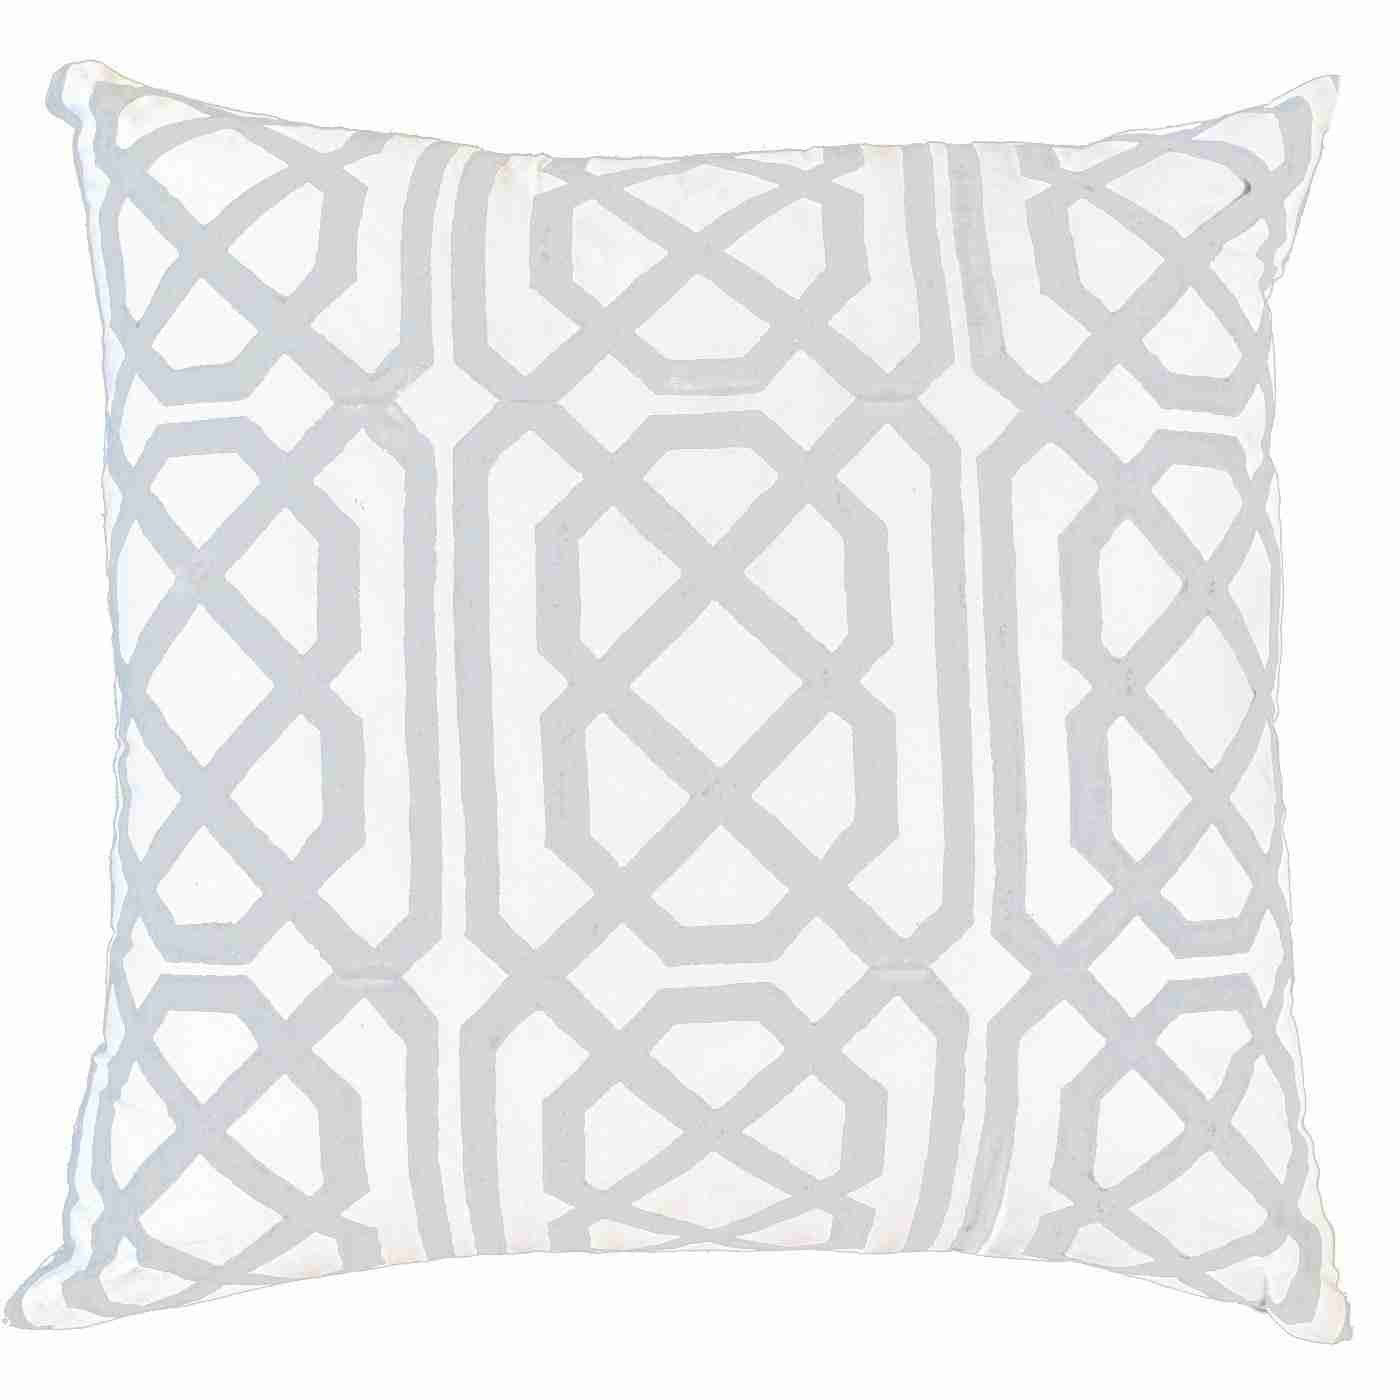 Bandhini Homewear Design Lounge Cushion Ice / 22 x 22 Jagger Print Frozen Dew Lounge Cushion 55 x 55 cm